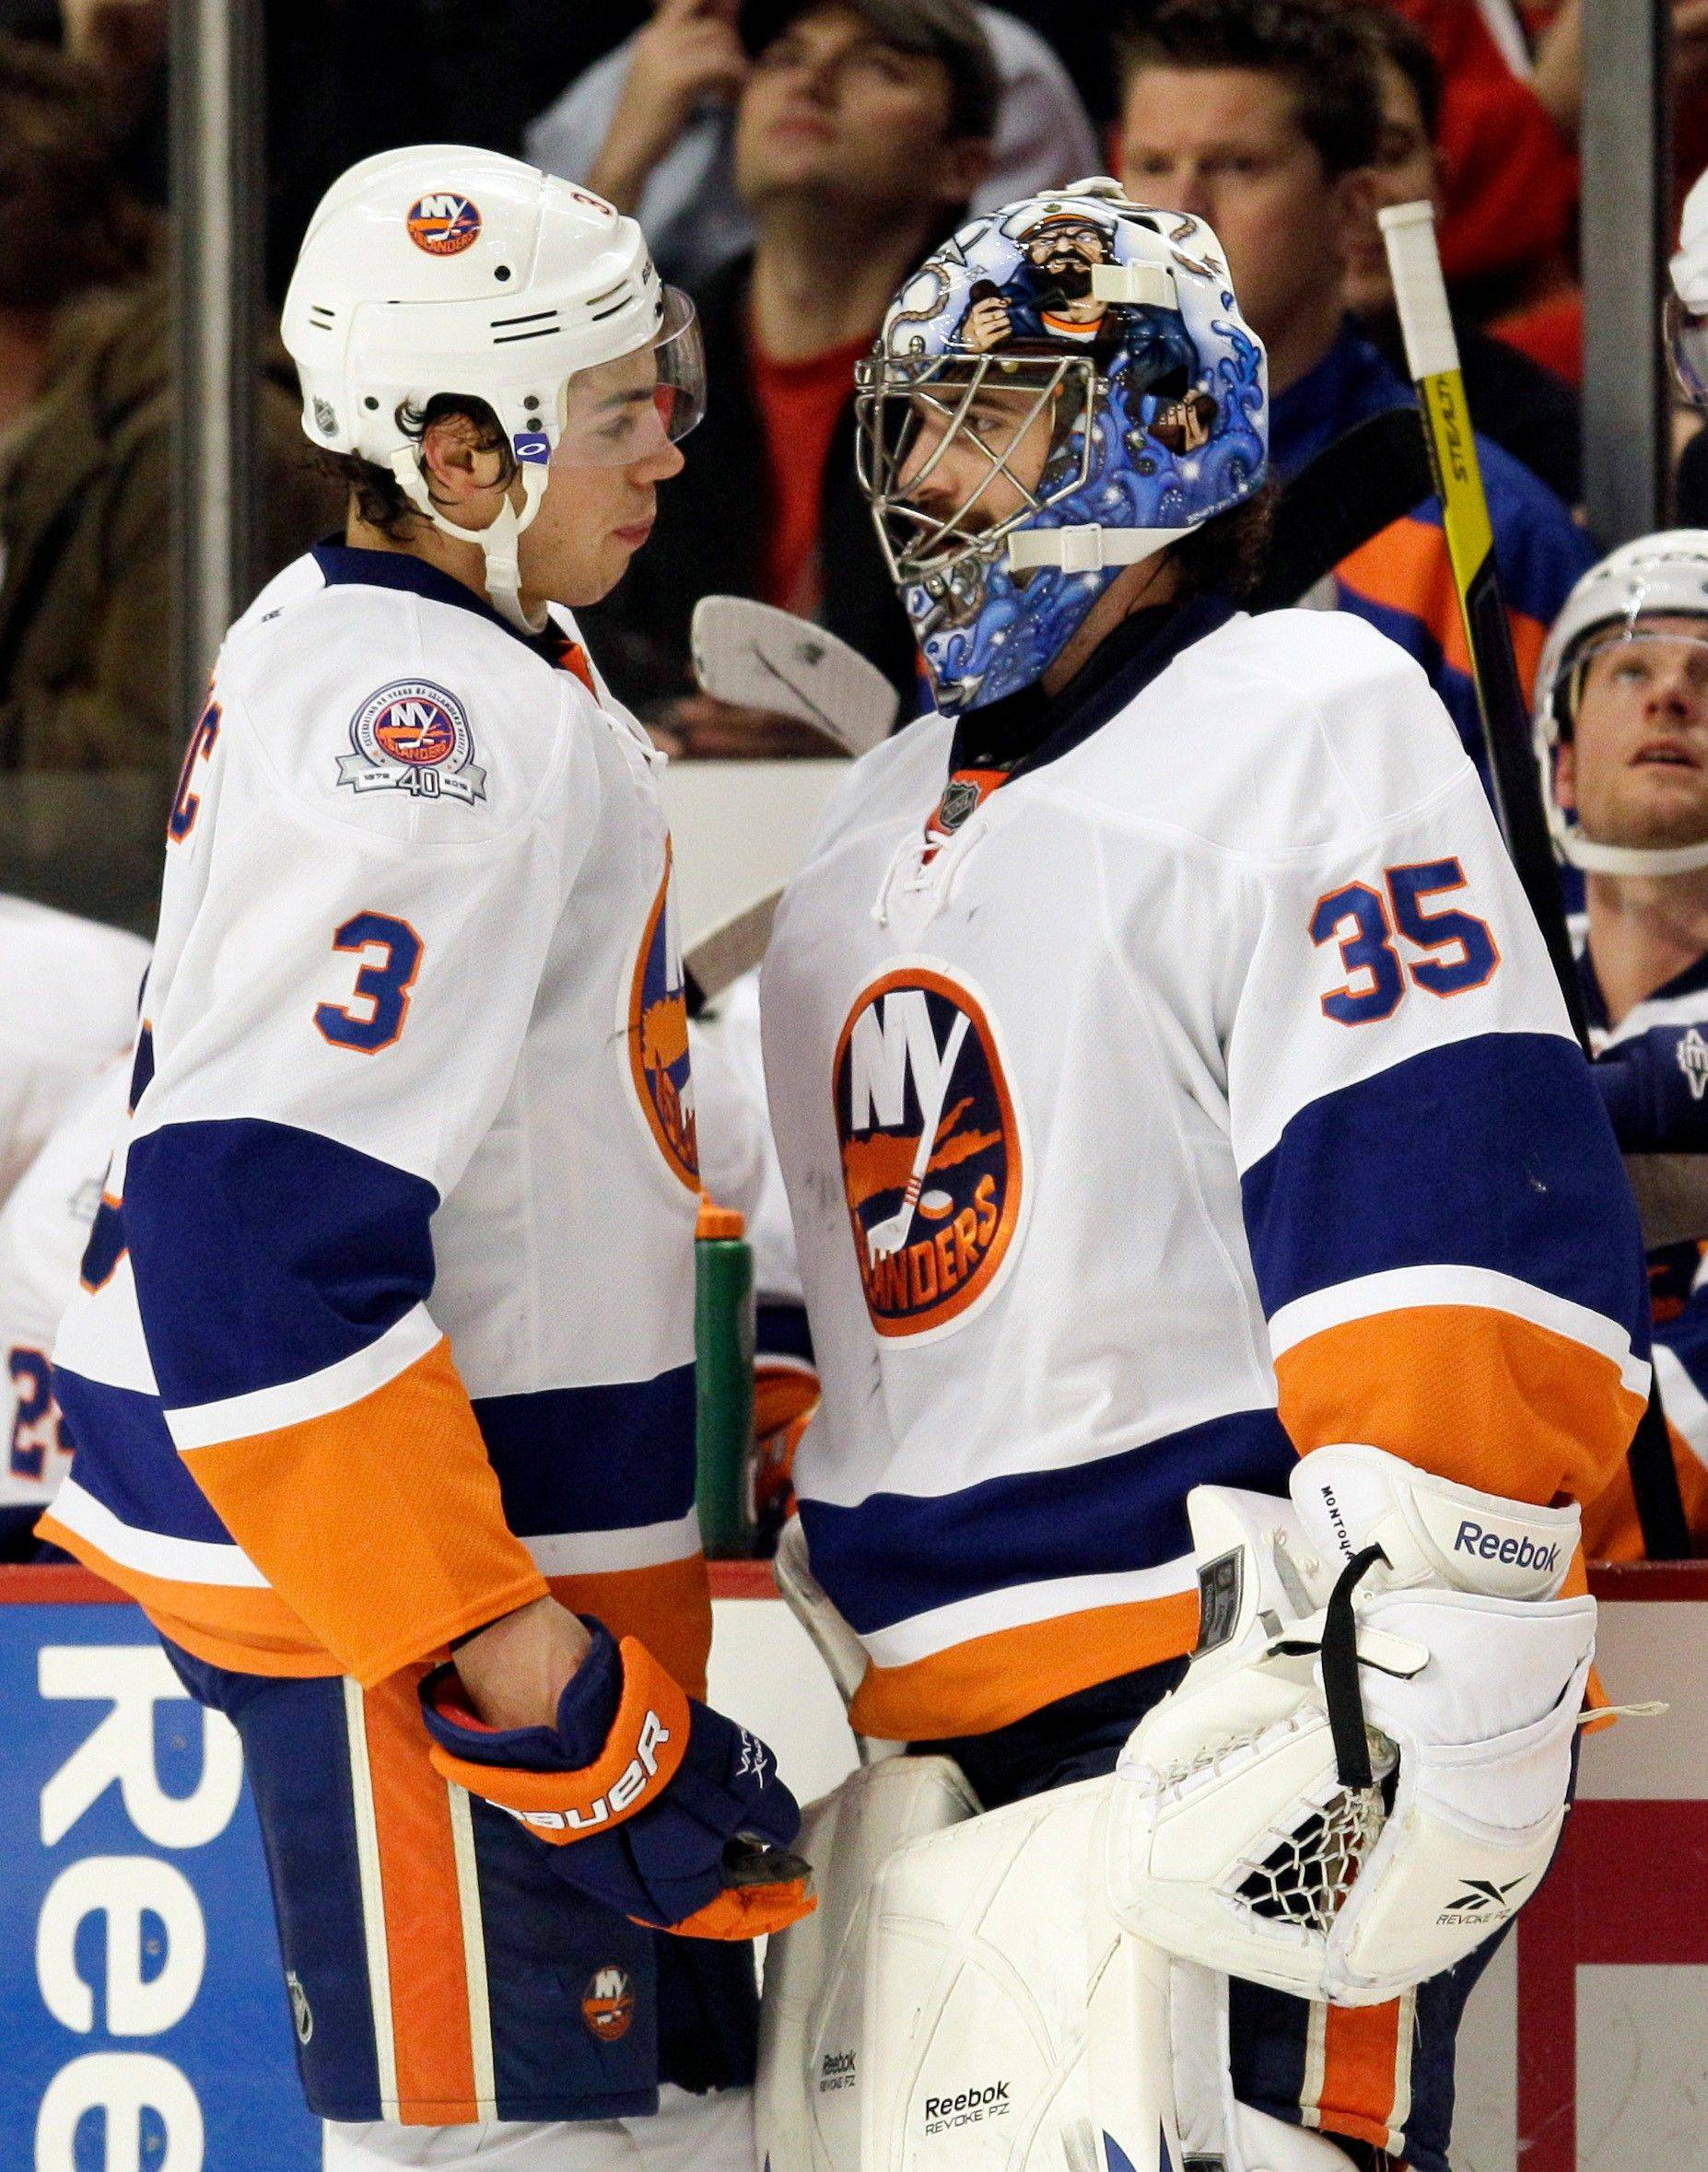 Associated PressTravis Hamonic talks with goalie Al Montoya during the first period of the Islanders' game with the Blackhawks on Friday. Montoya is from Glenview and was the sixth pick in the 2004 draft.